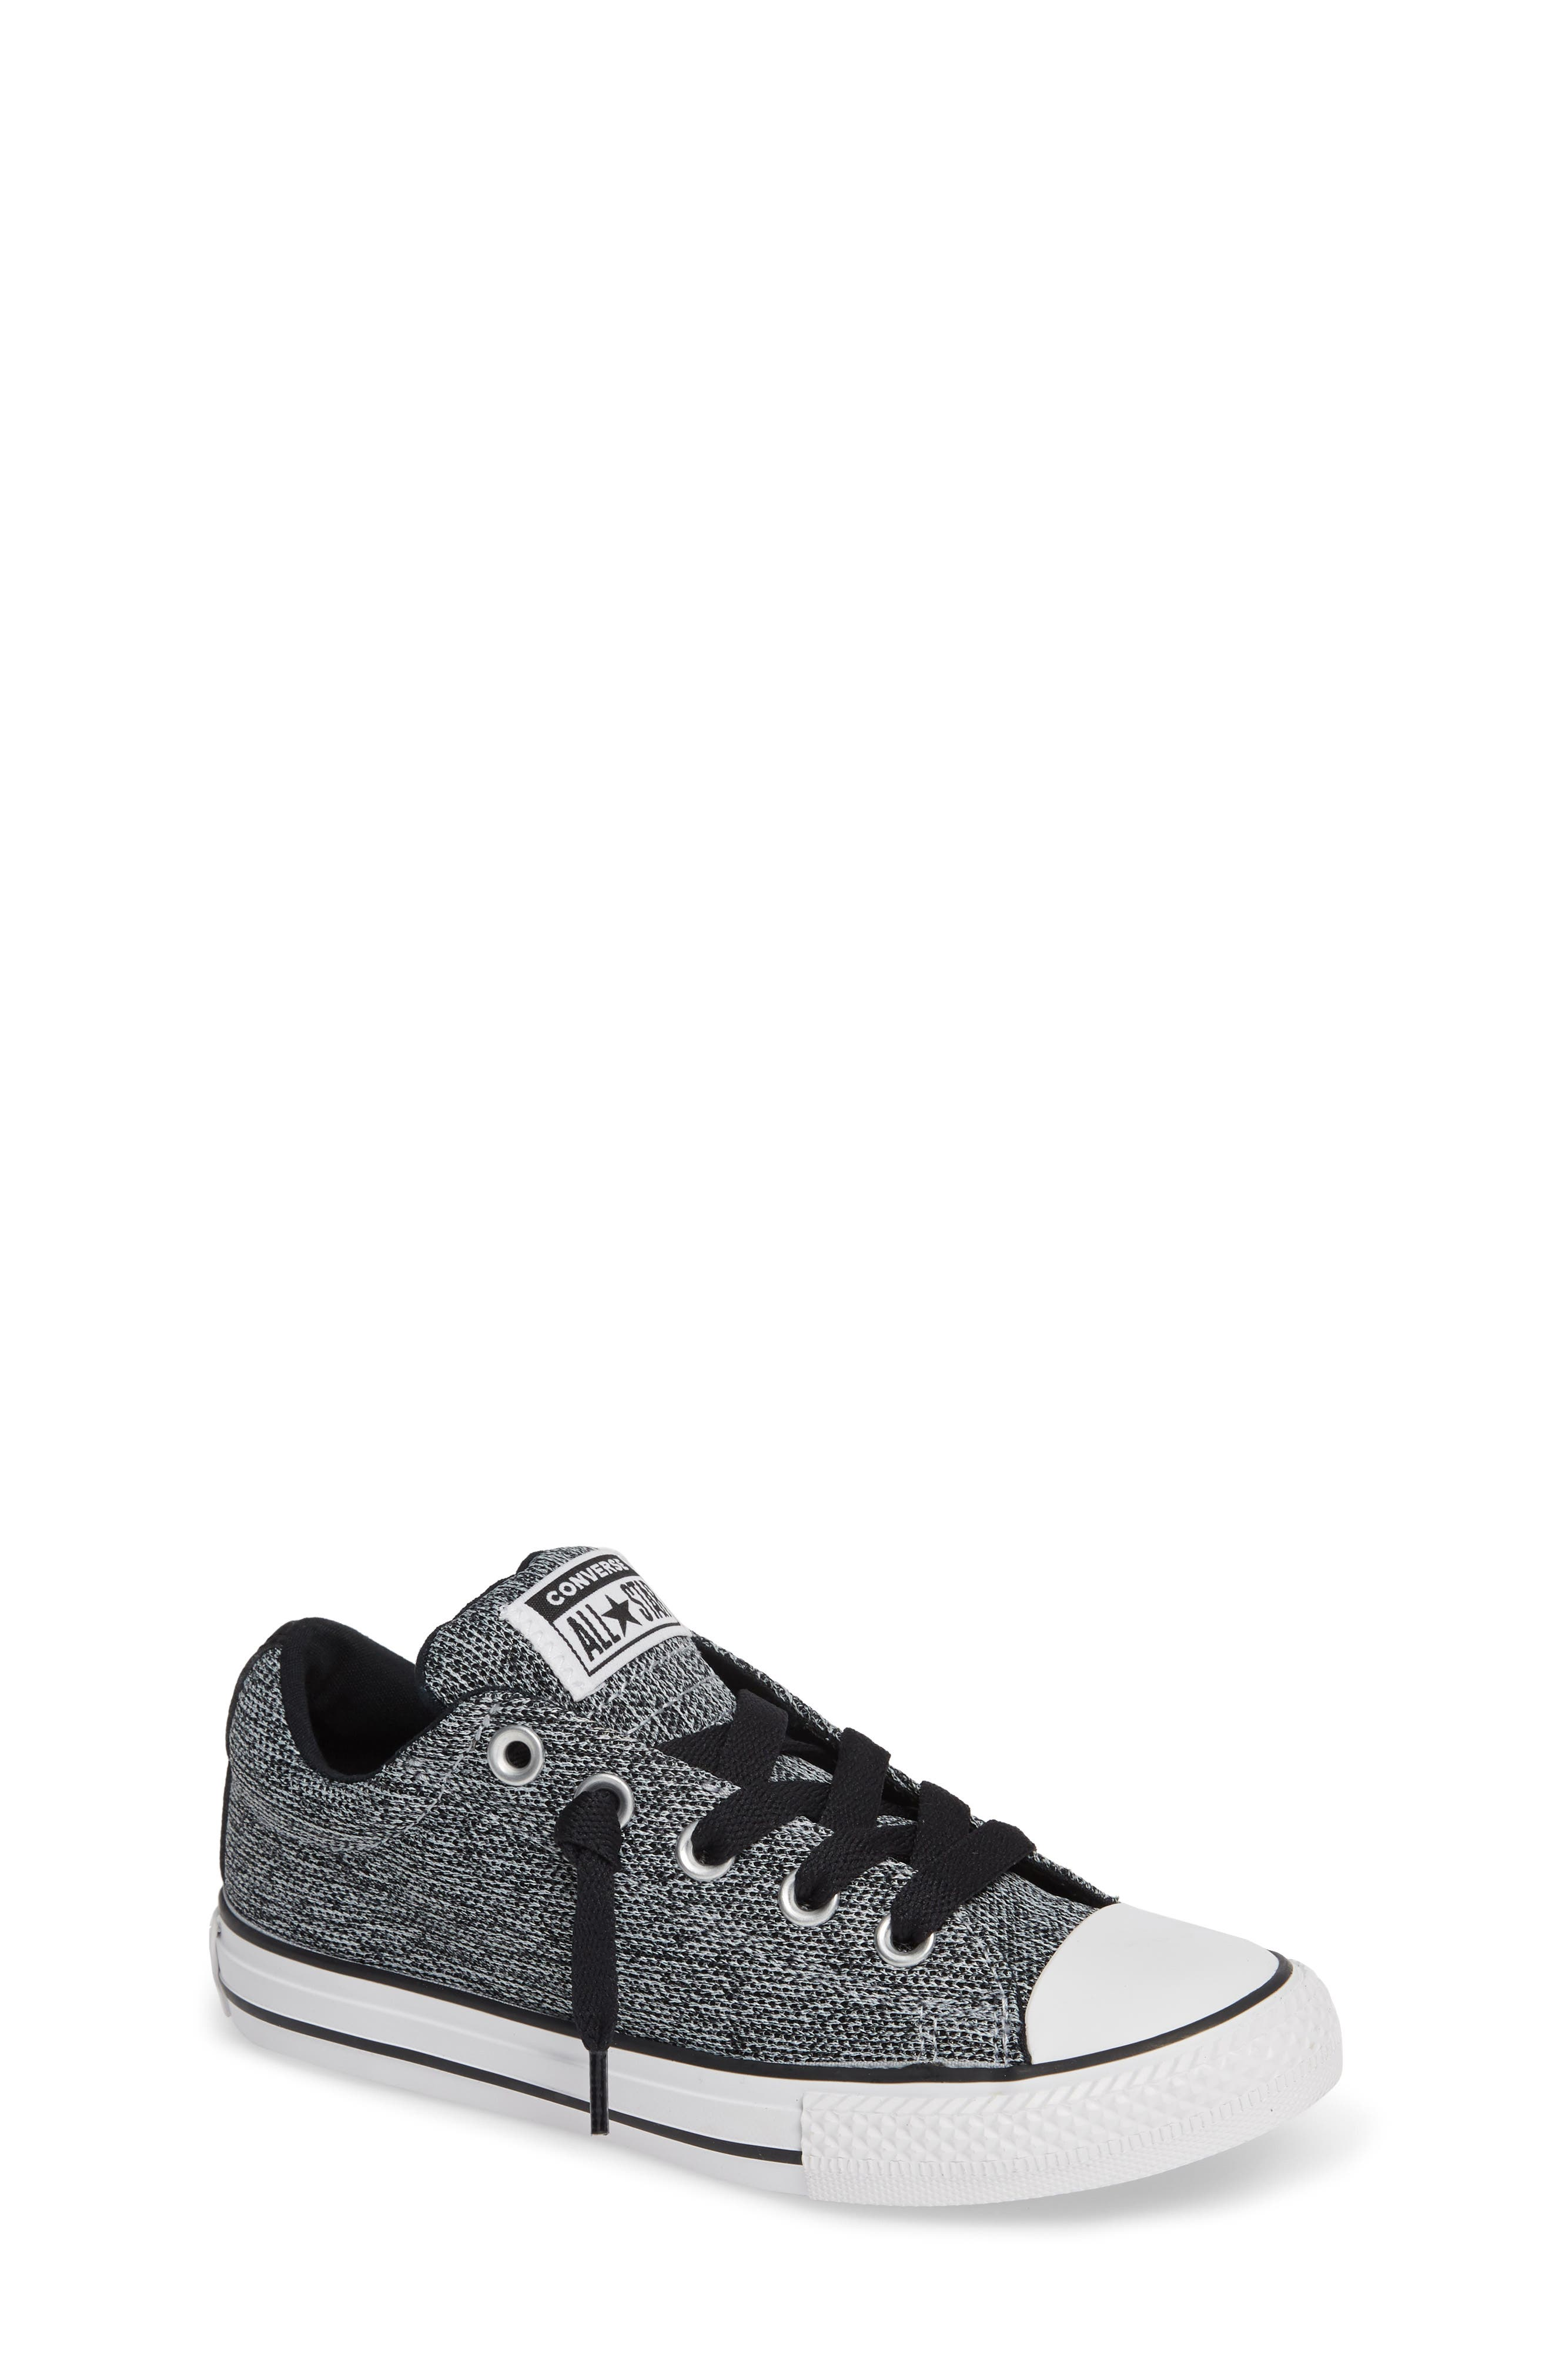 CONVERSE,                             All Star<sup>®</sup> Graphite Textured Street Low Top Sneaker,                             Main thumbnail 1, color,                             WOLF GREY